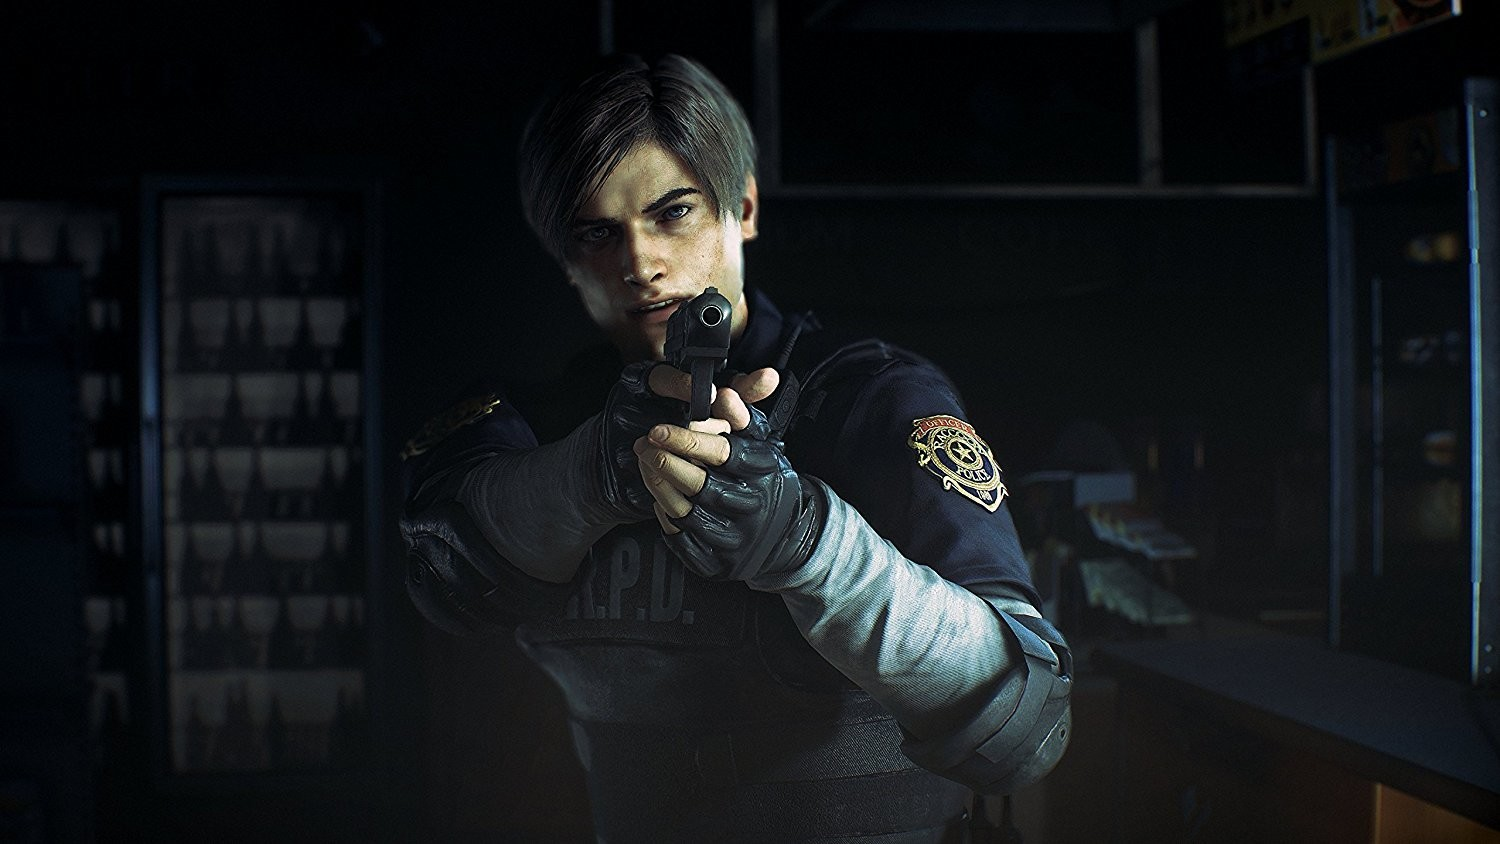 Resident Evil 2, EA and Star Wars, and Destiny